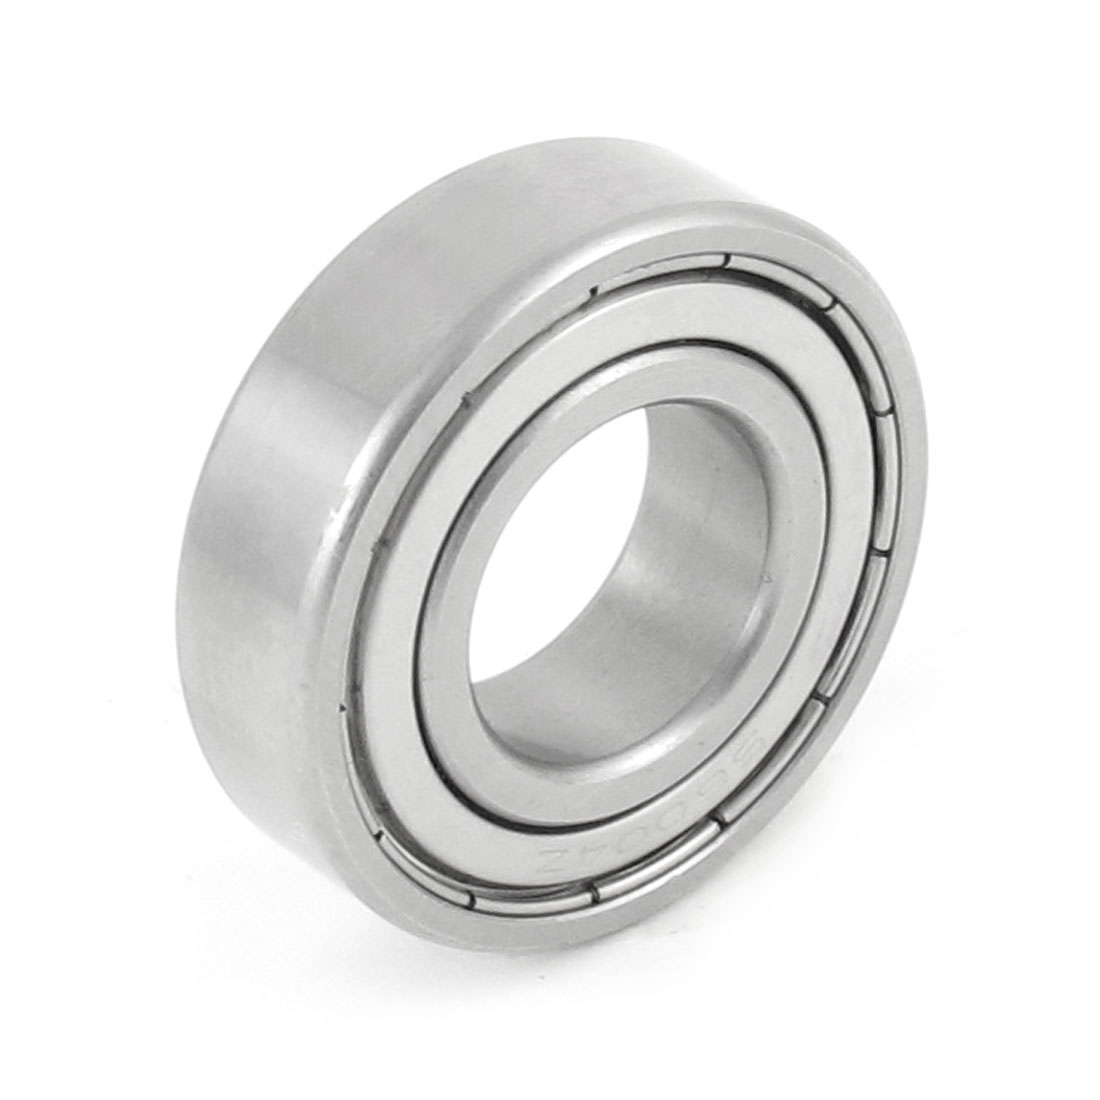 Stainless Steel 41mm x 20mm x 12mm Sealed Deep Groove Ball Bearing